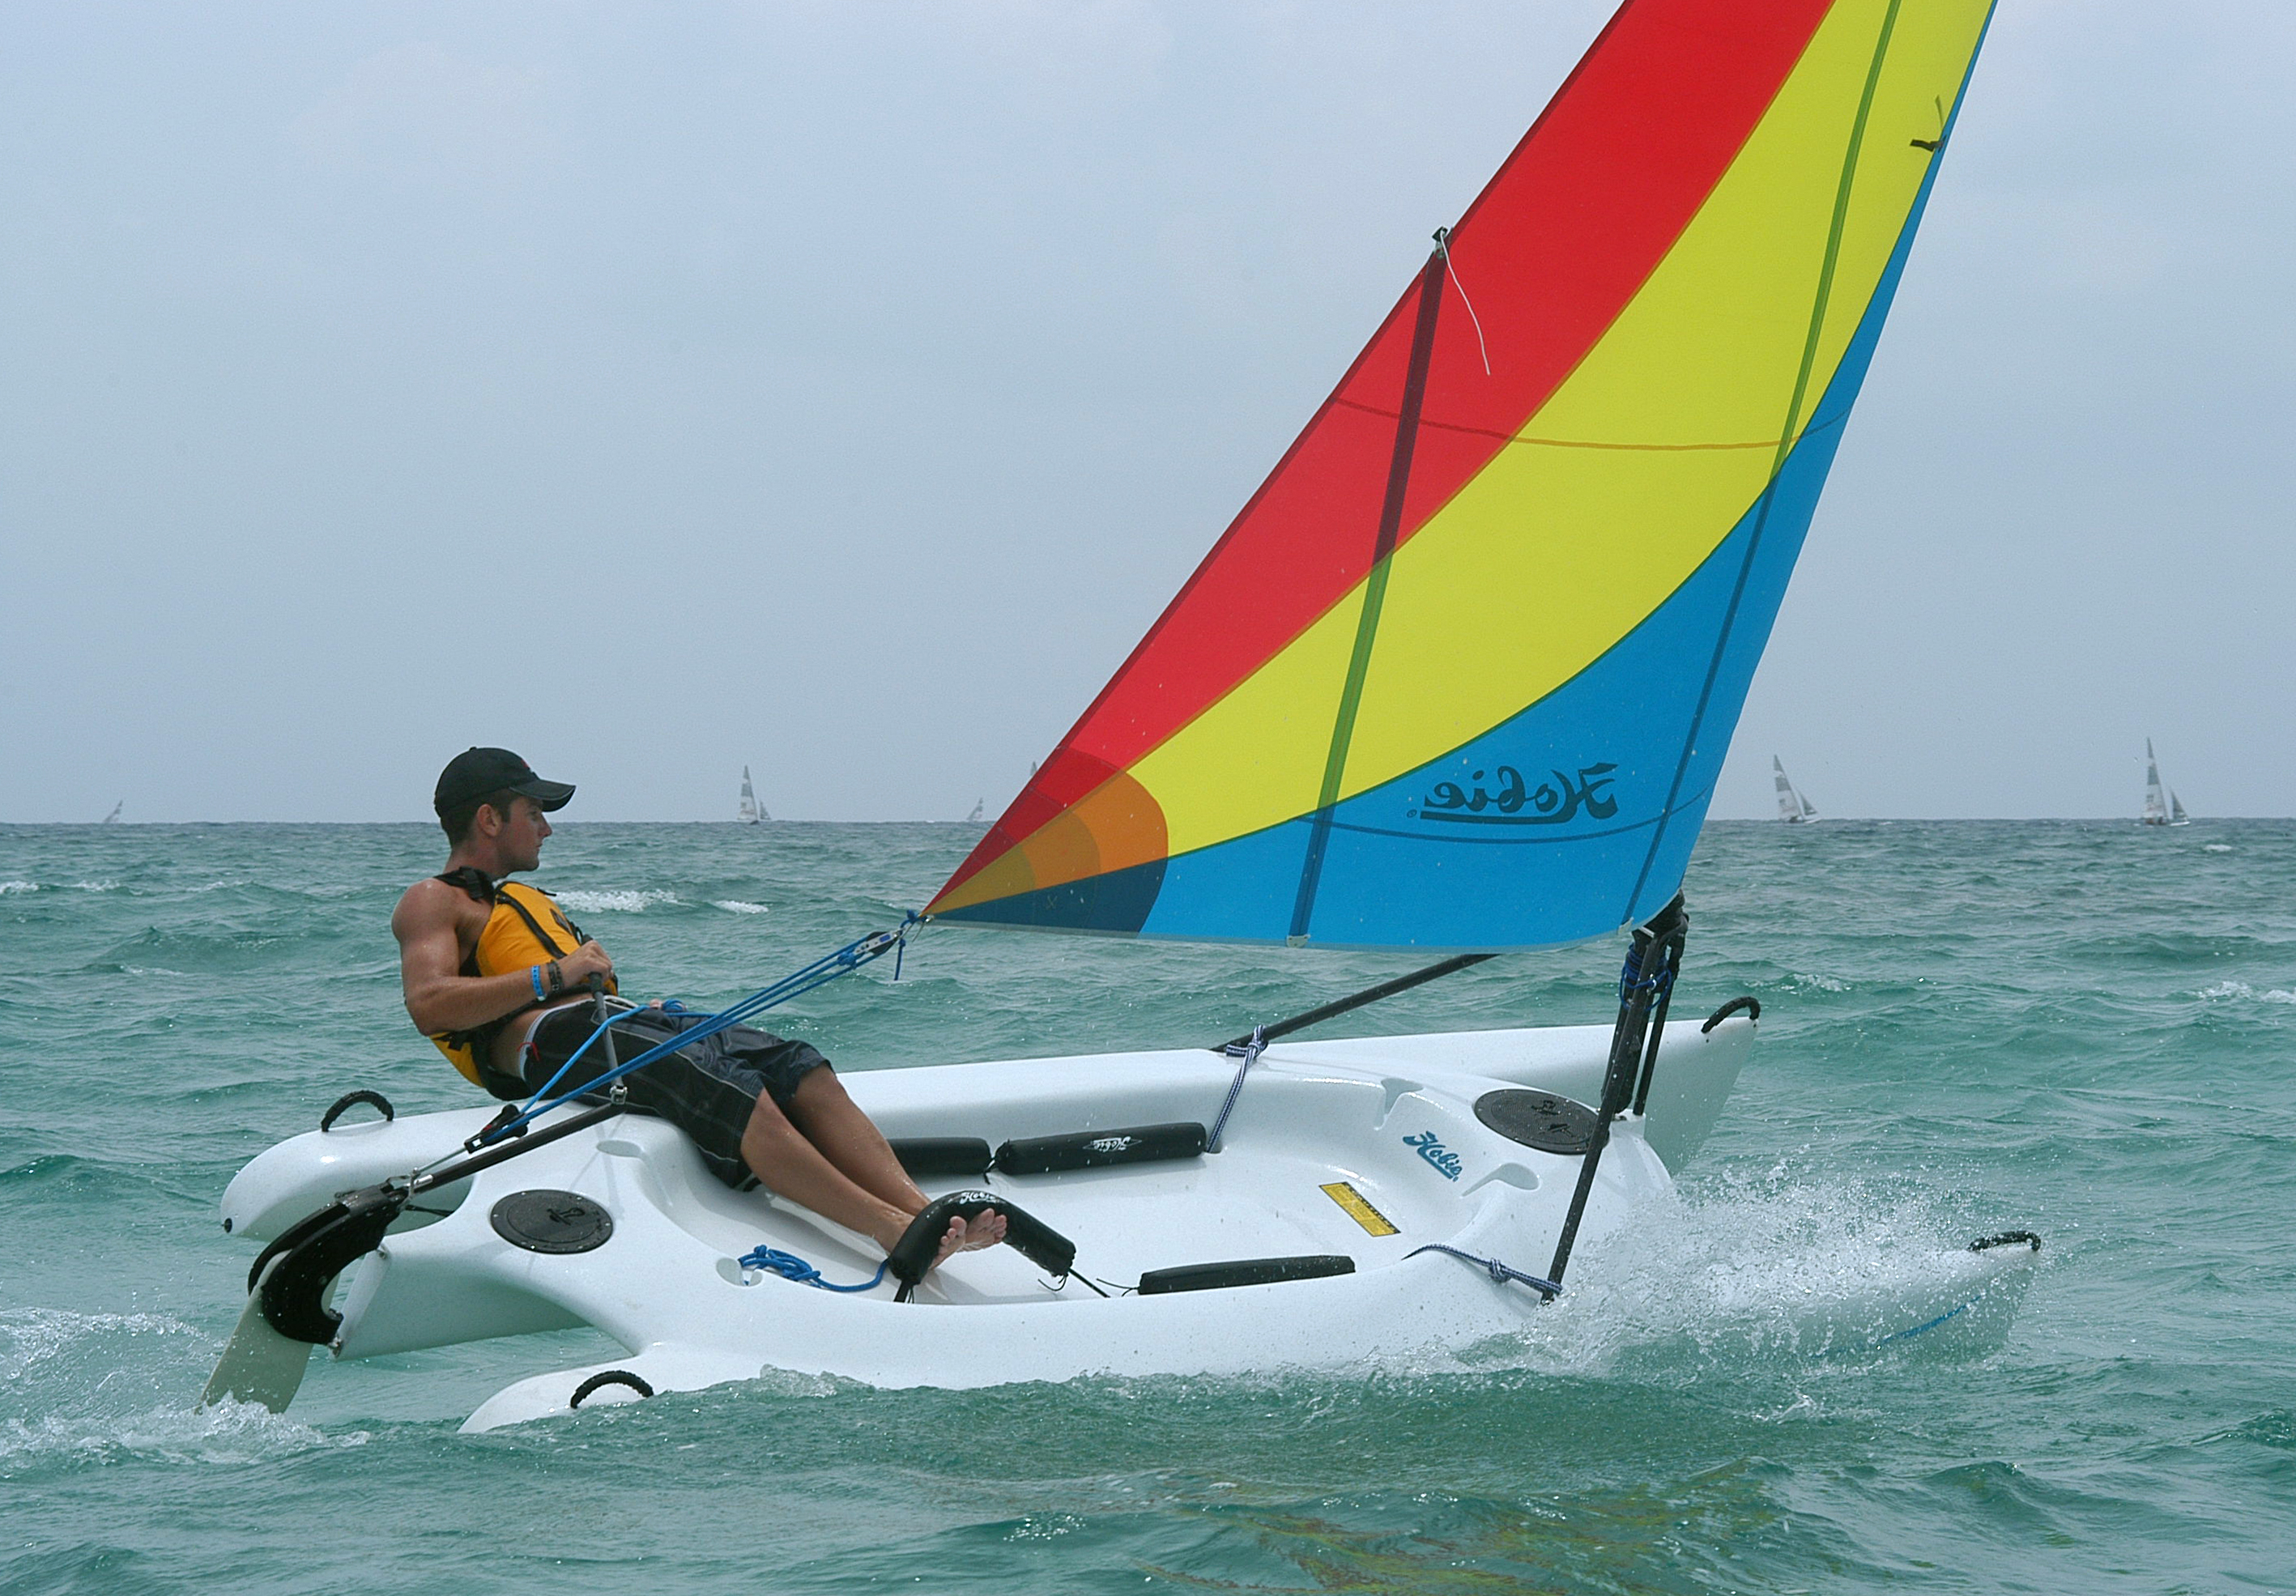 Man riding his hobie cat